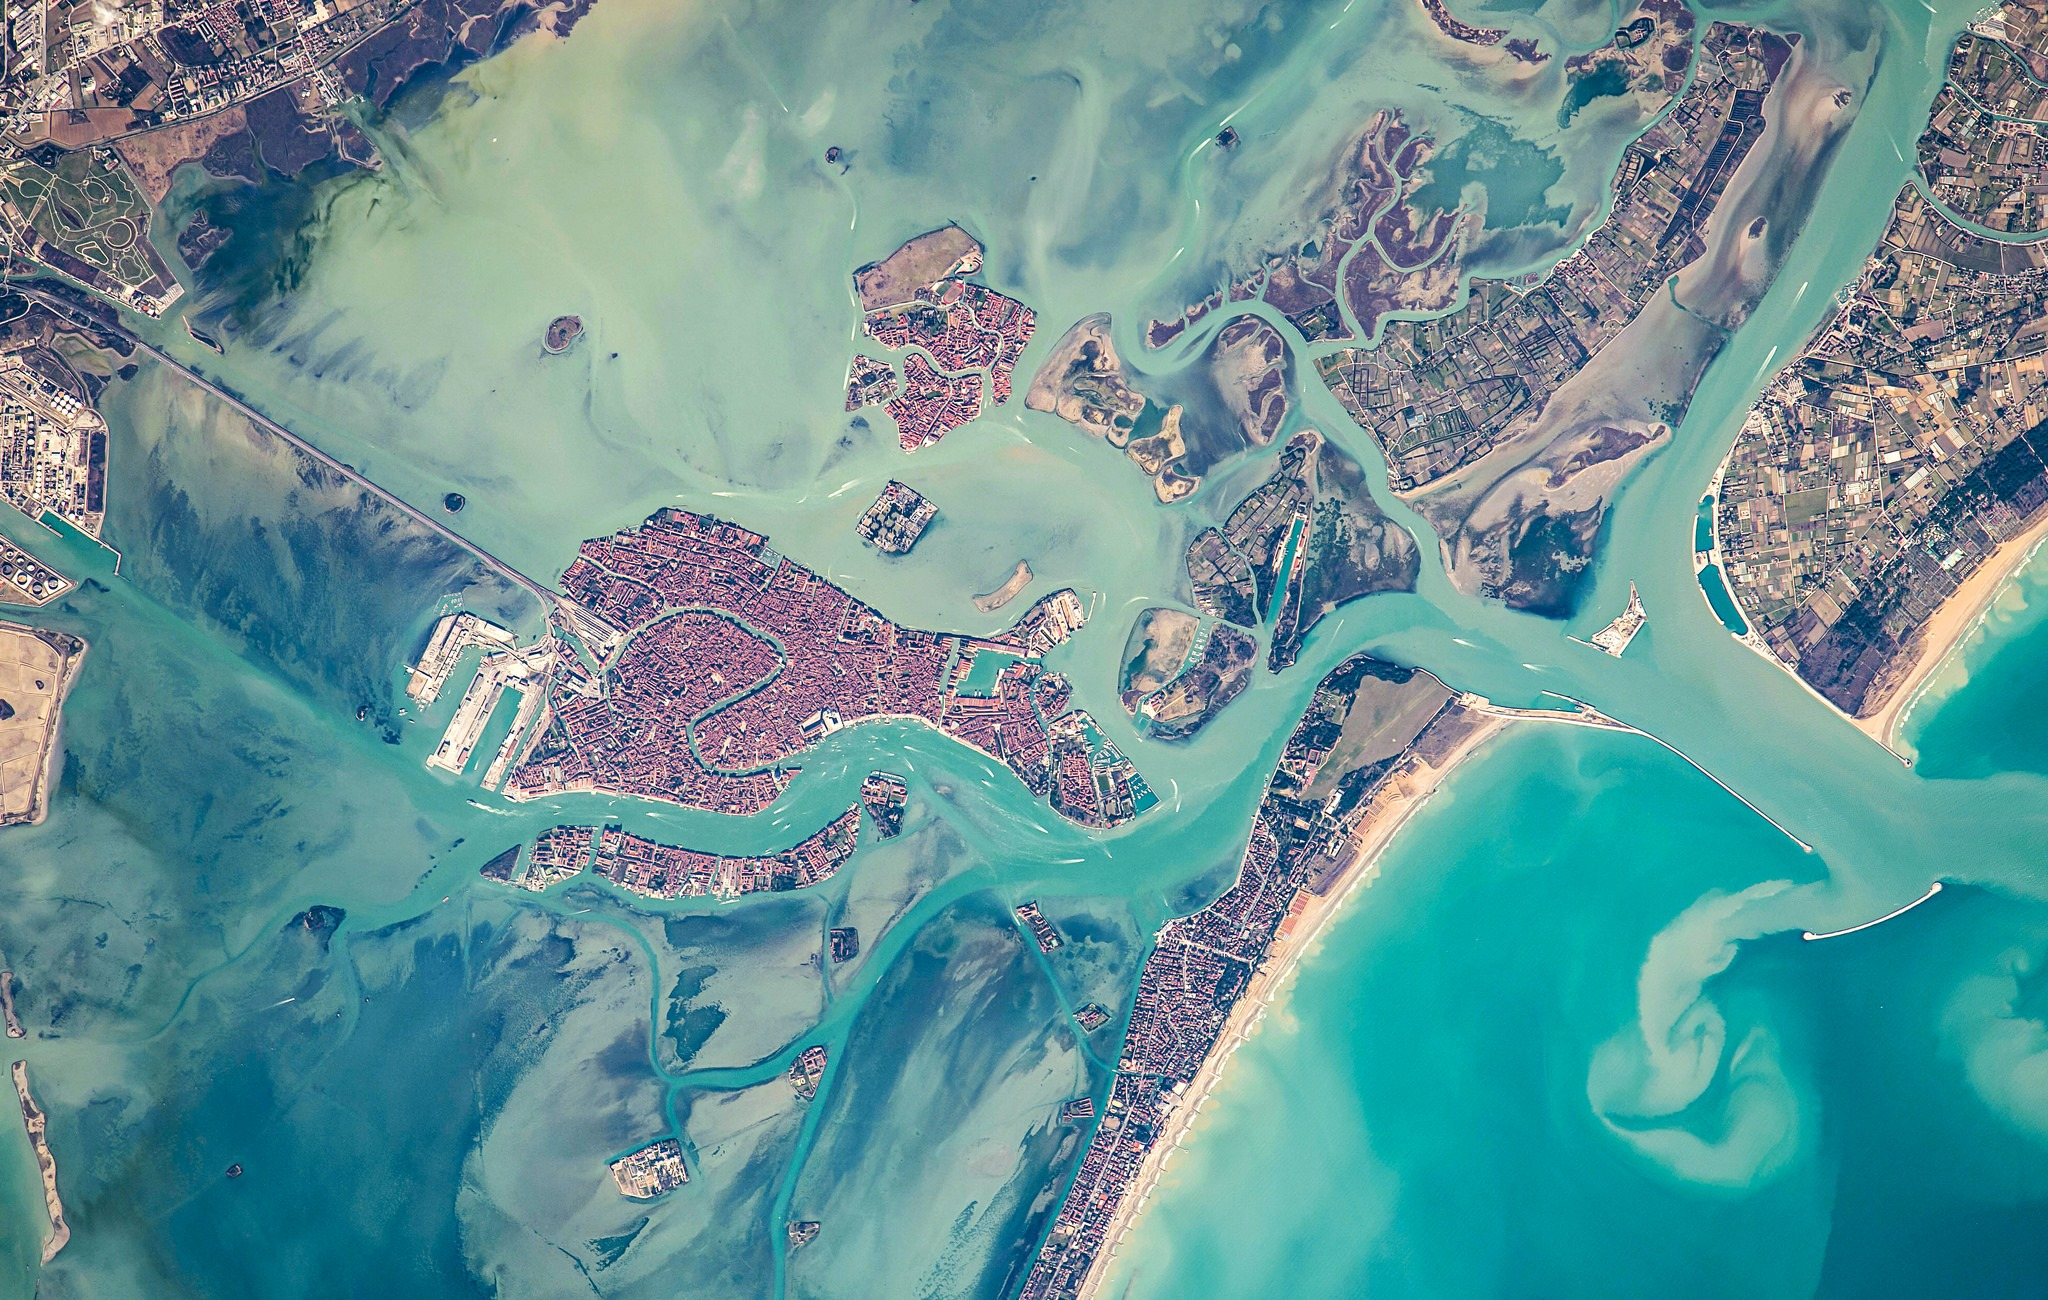 A satellite view of Venice and the surrounding lagoon. Upon completion of the MOSE project in 2018, a series of flood gates between the lagoon and the Adriatic Sea will protect the city from high tide and storm surges.